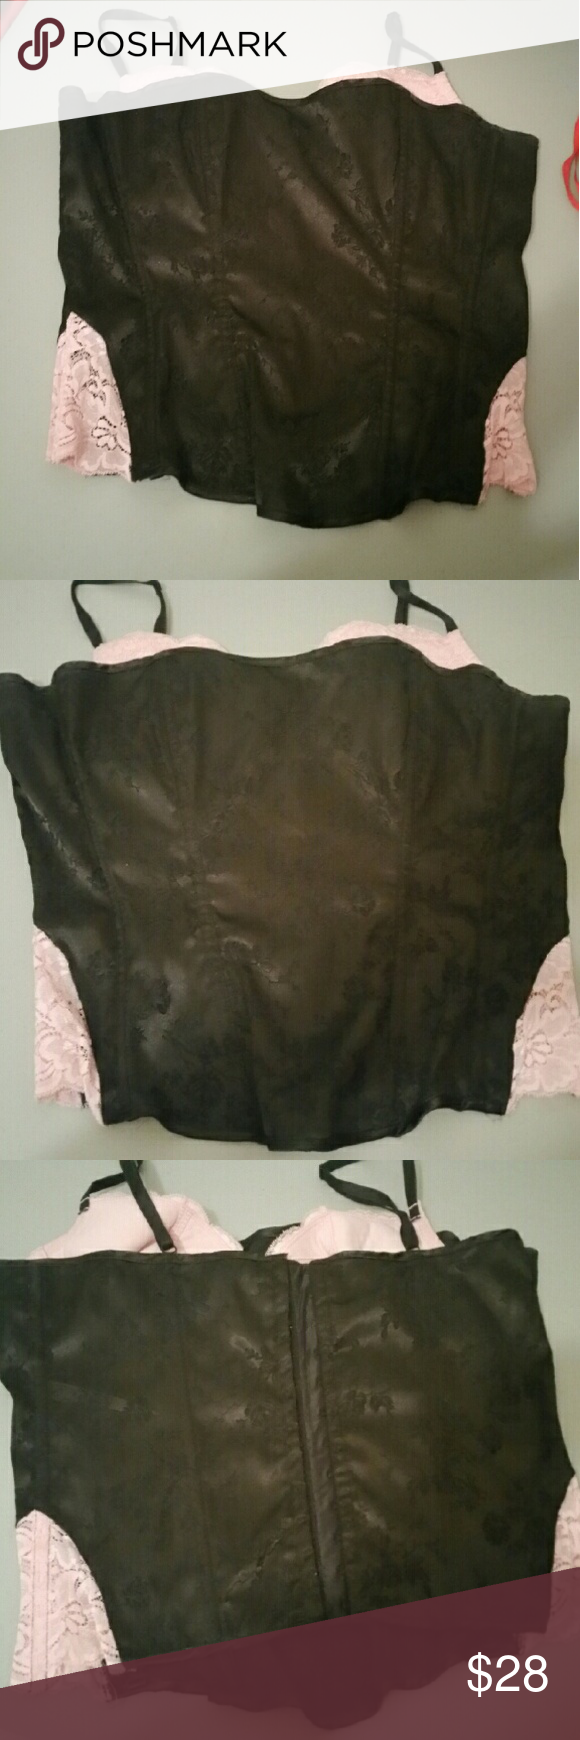 Fredrick of Hollywood black and pink boned corset Great condition. No rips stains or tears. Black corset with pink lace accents and bralette inside. Measures size 38. Good boning. Frederick's of Hollywood Intimates & Sleepwear Shapewear